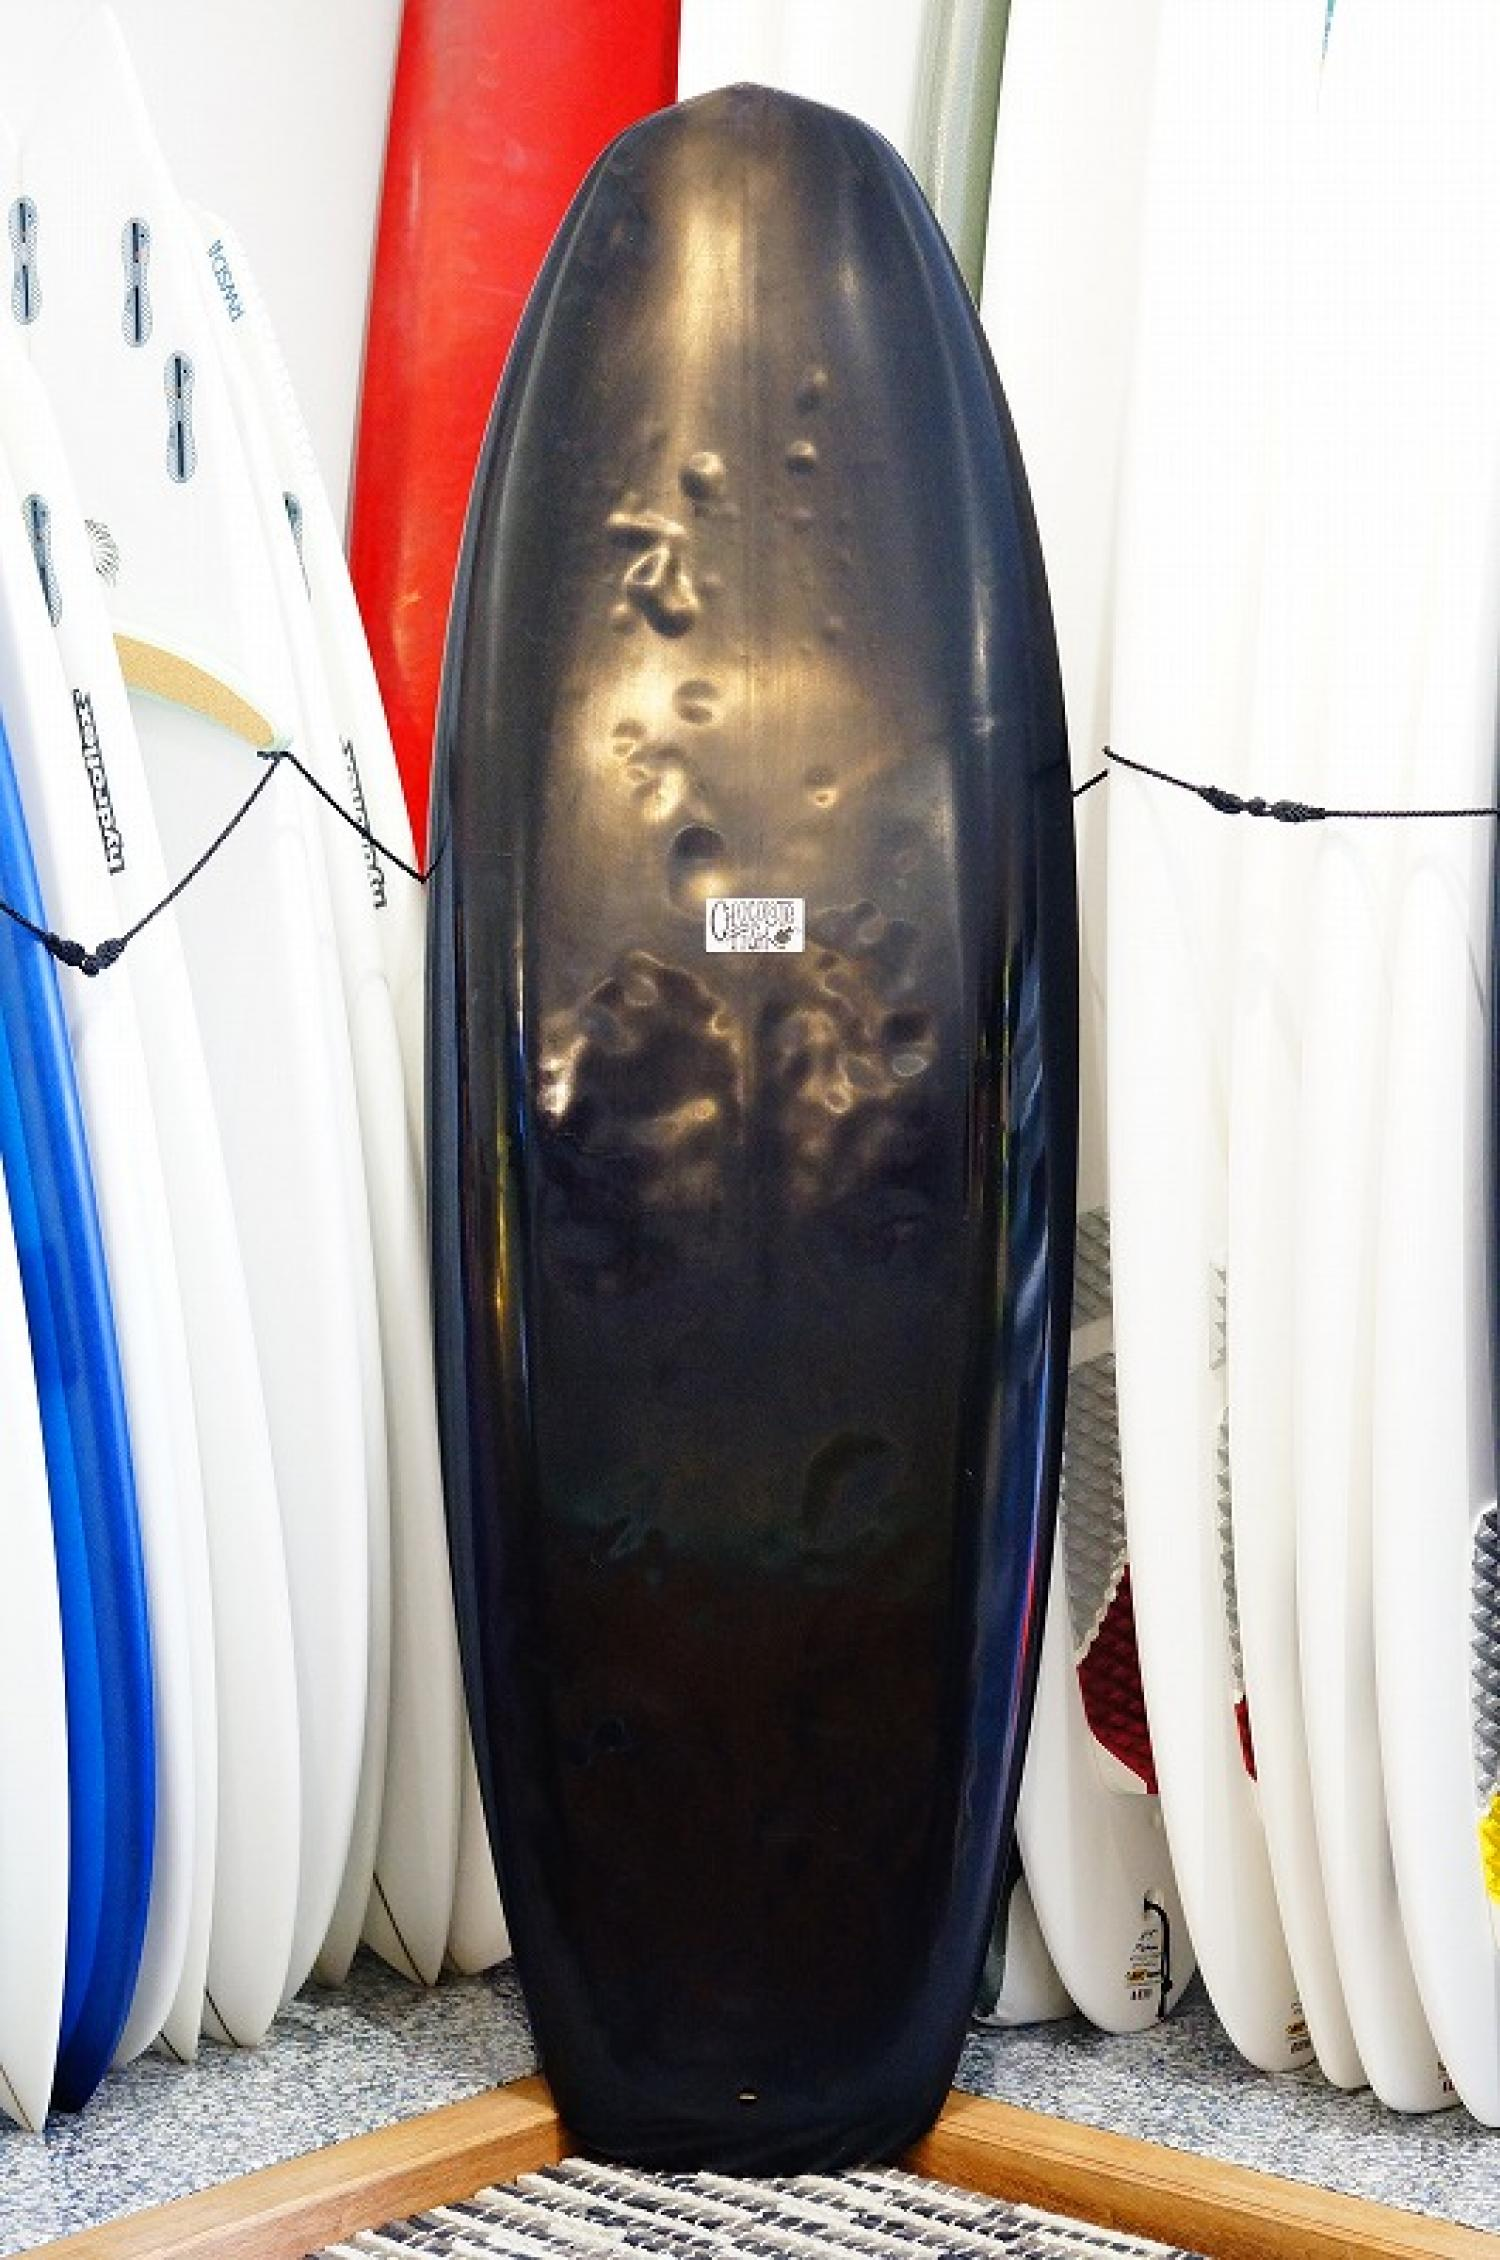 USED BOARDS (Chocolate Fish Surfboards Double Diamond 5.9)